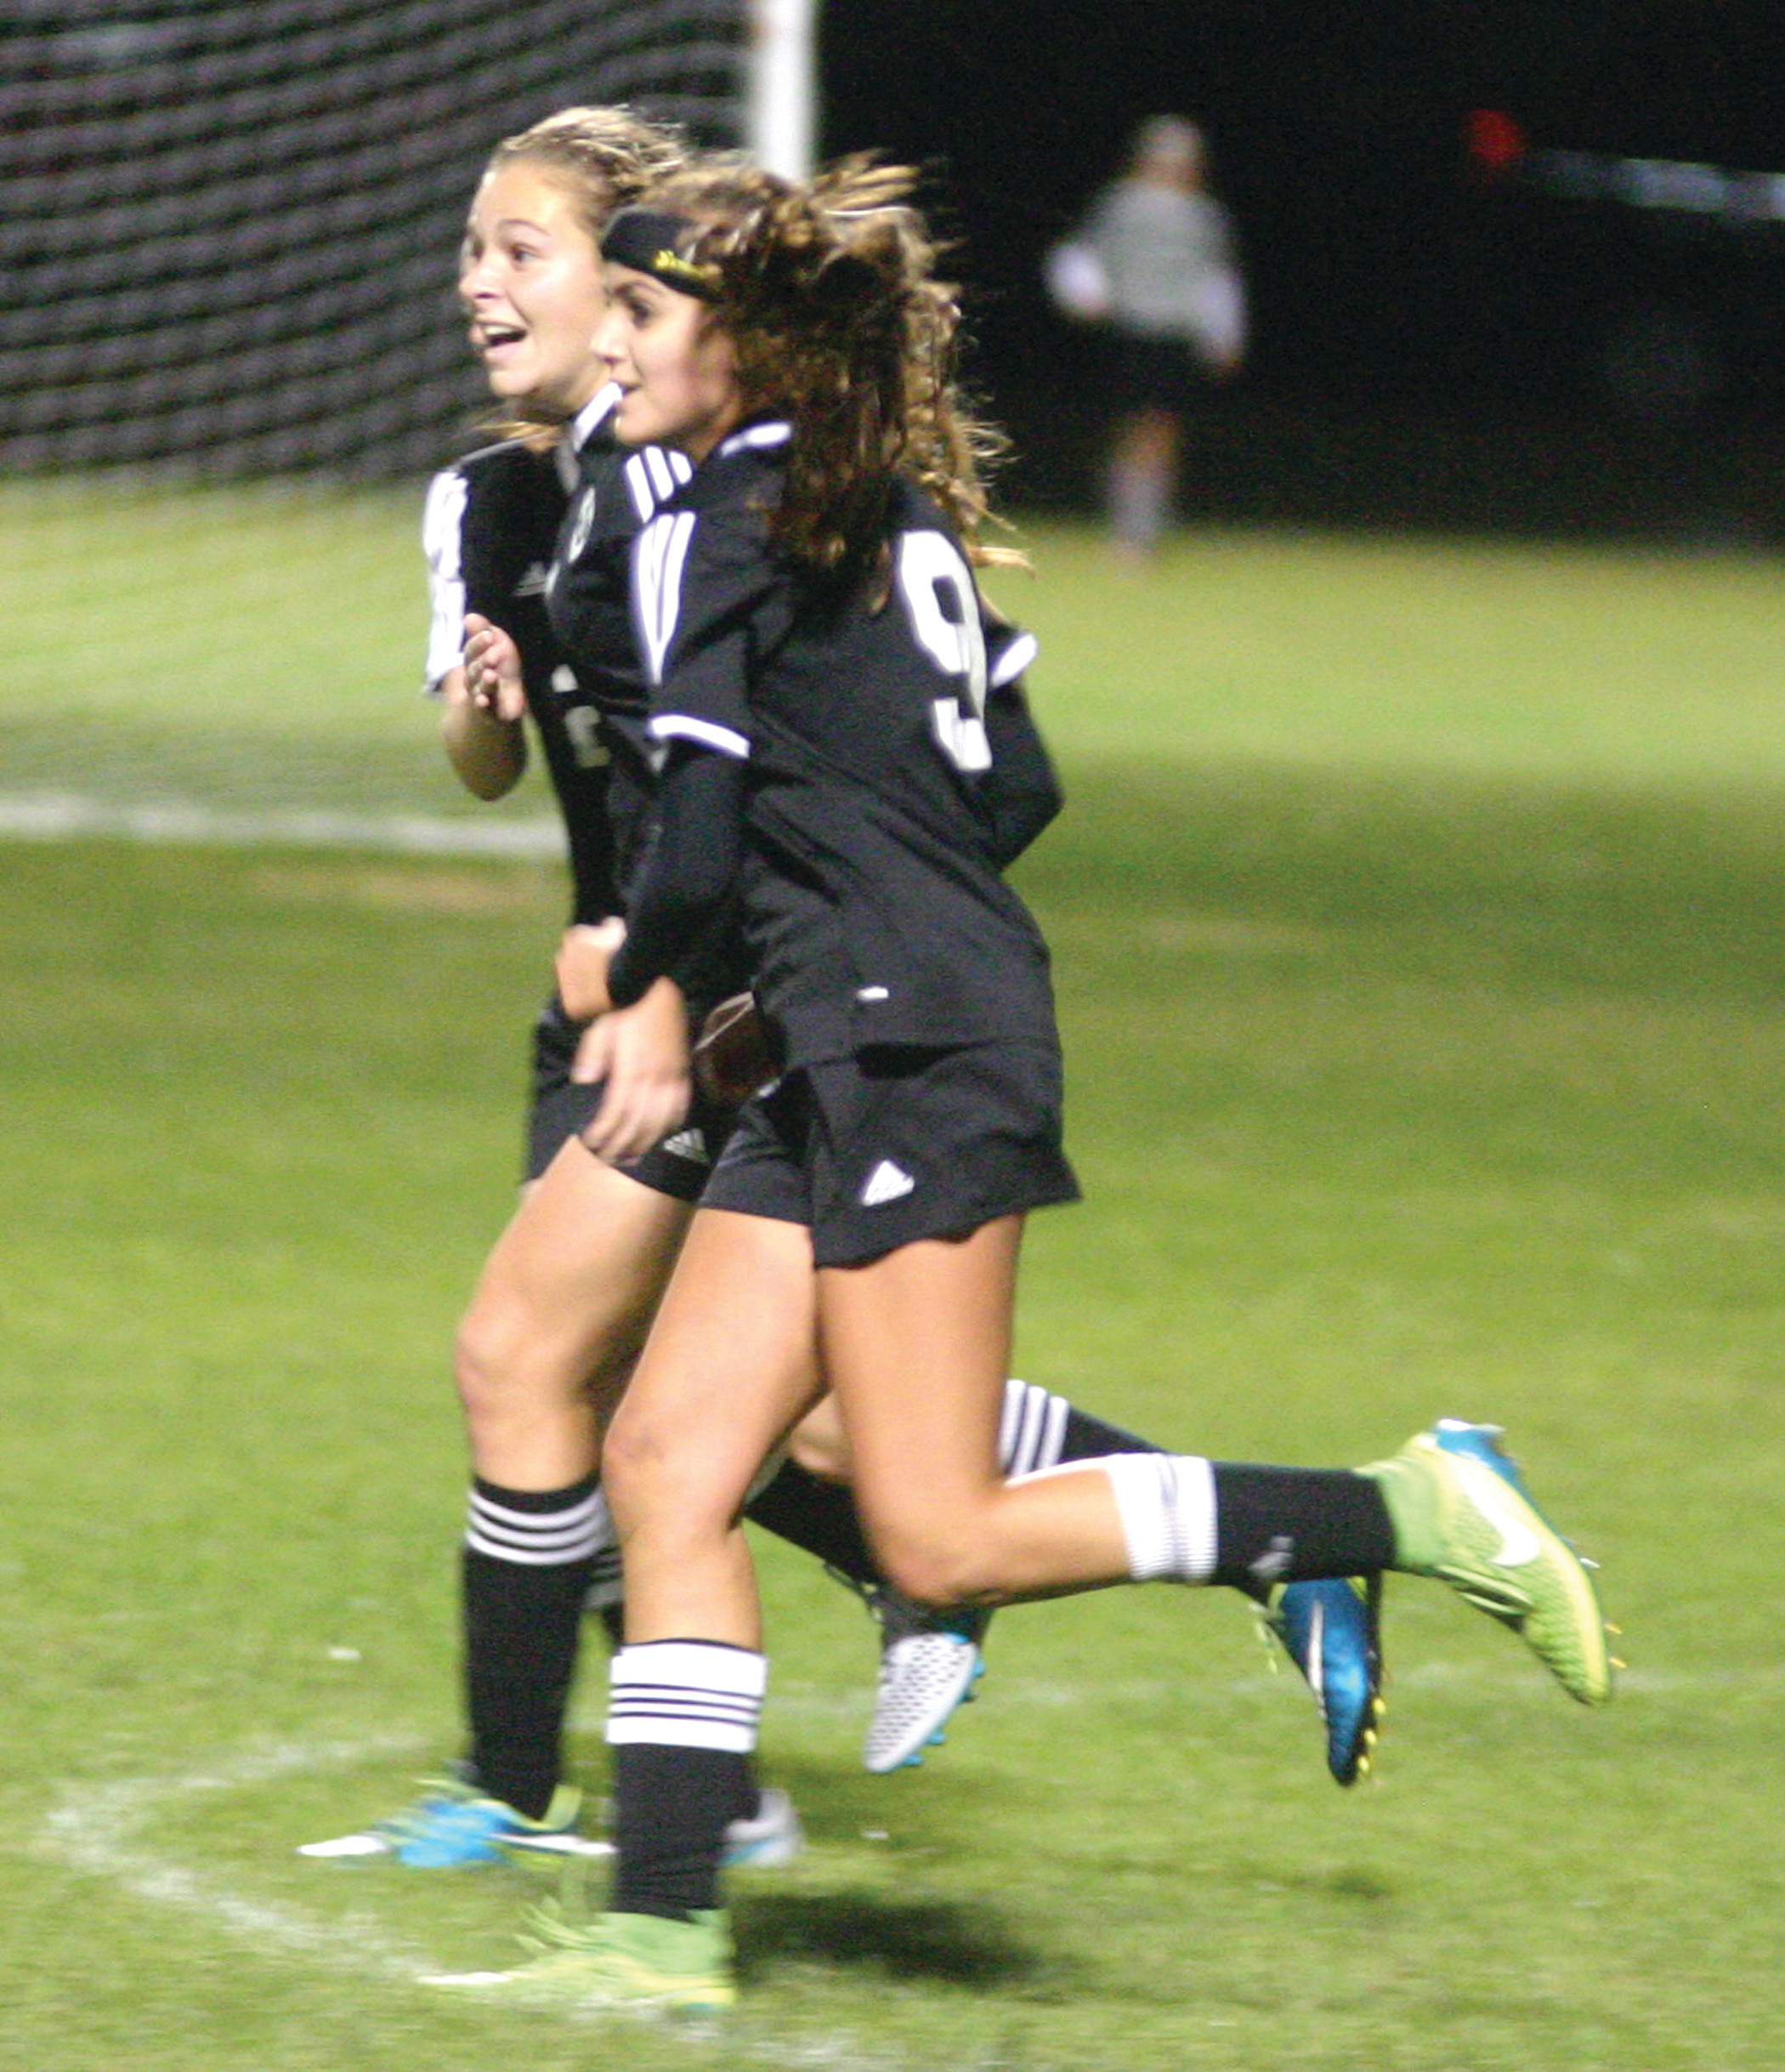 Kendra Tantimonico celebrates with teammate Jordan Petrucci (9) after scoring a goal against Toll Gate.